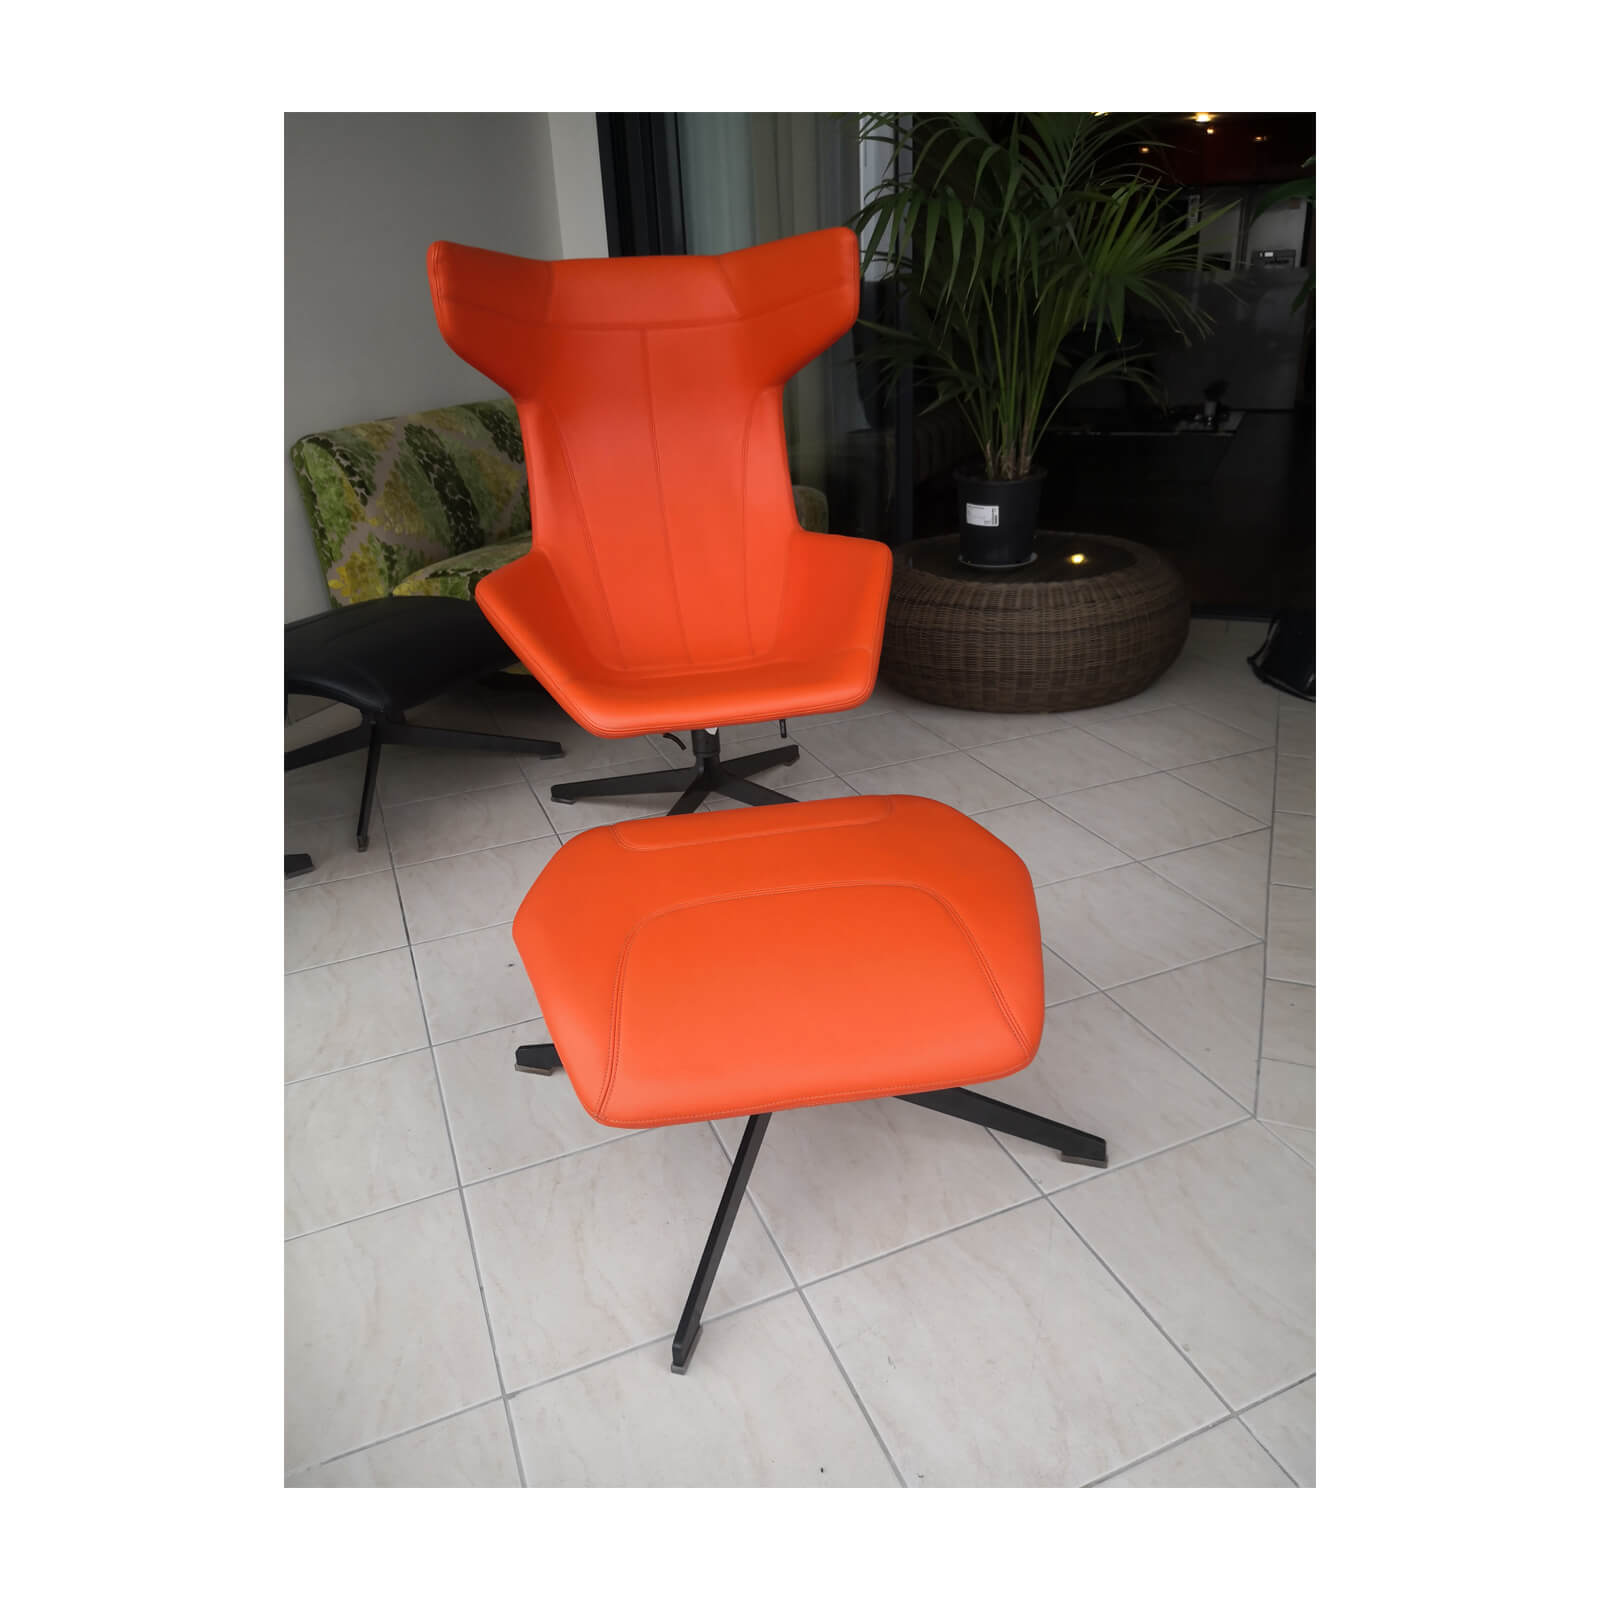 Two Design Lovers Moroso Take a Line for a Walk orange swivel chair with footstool 5